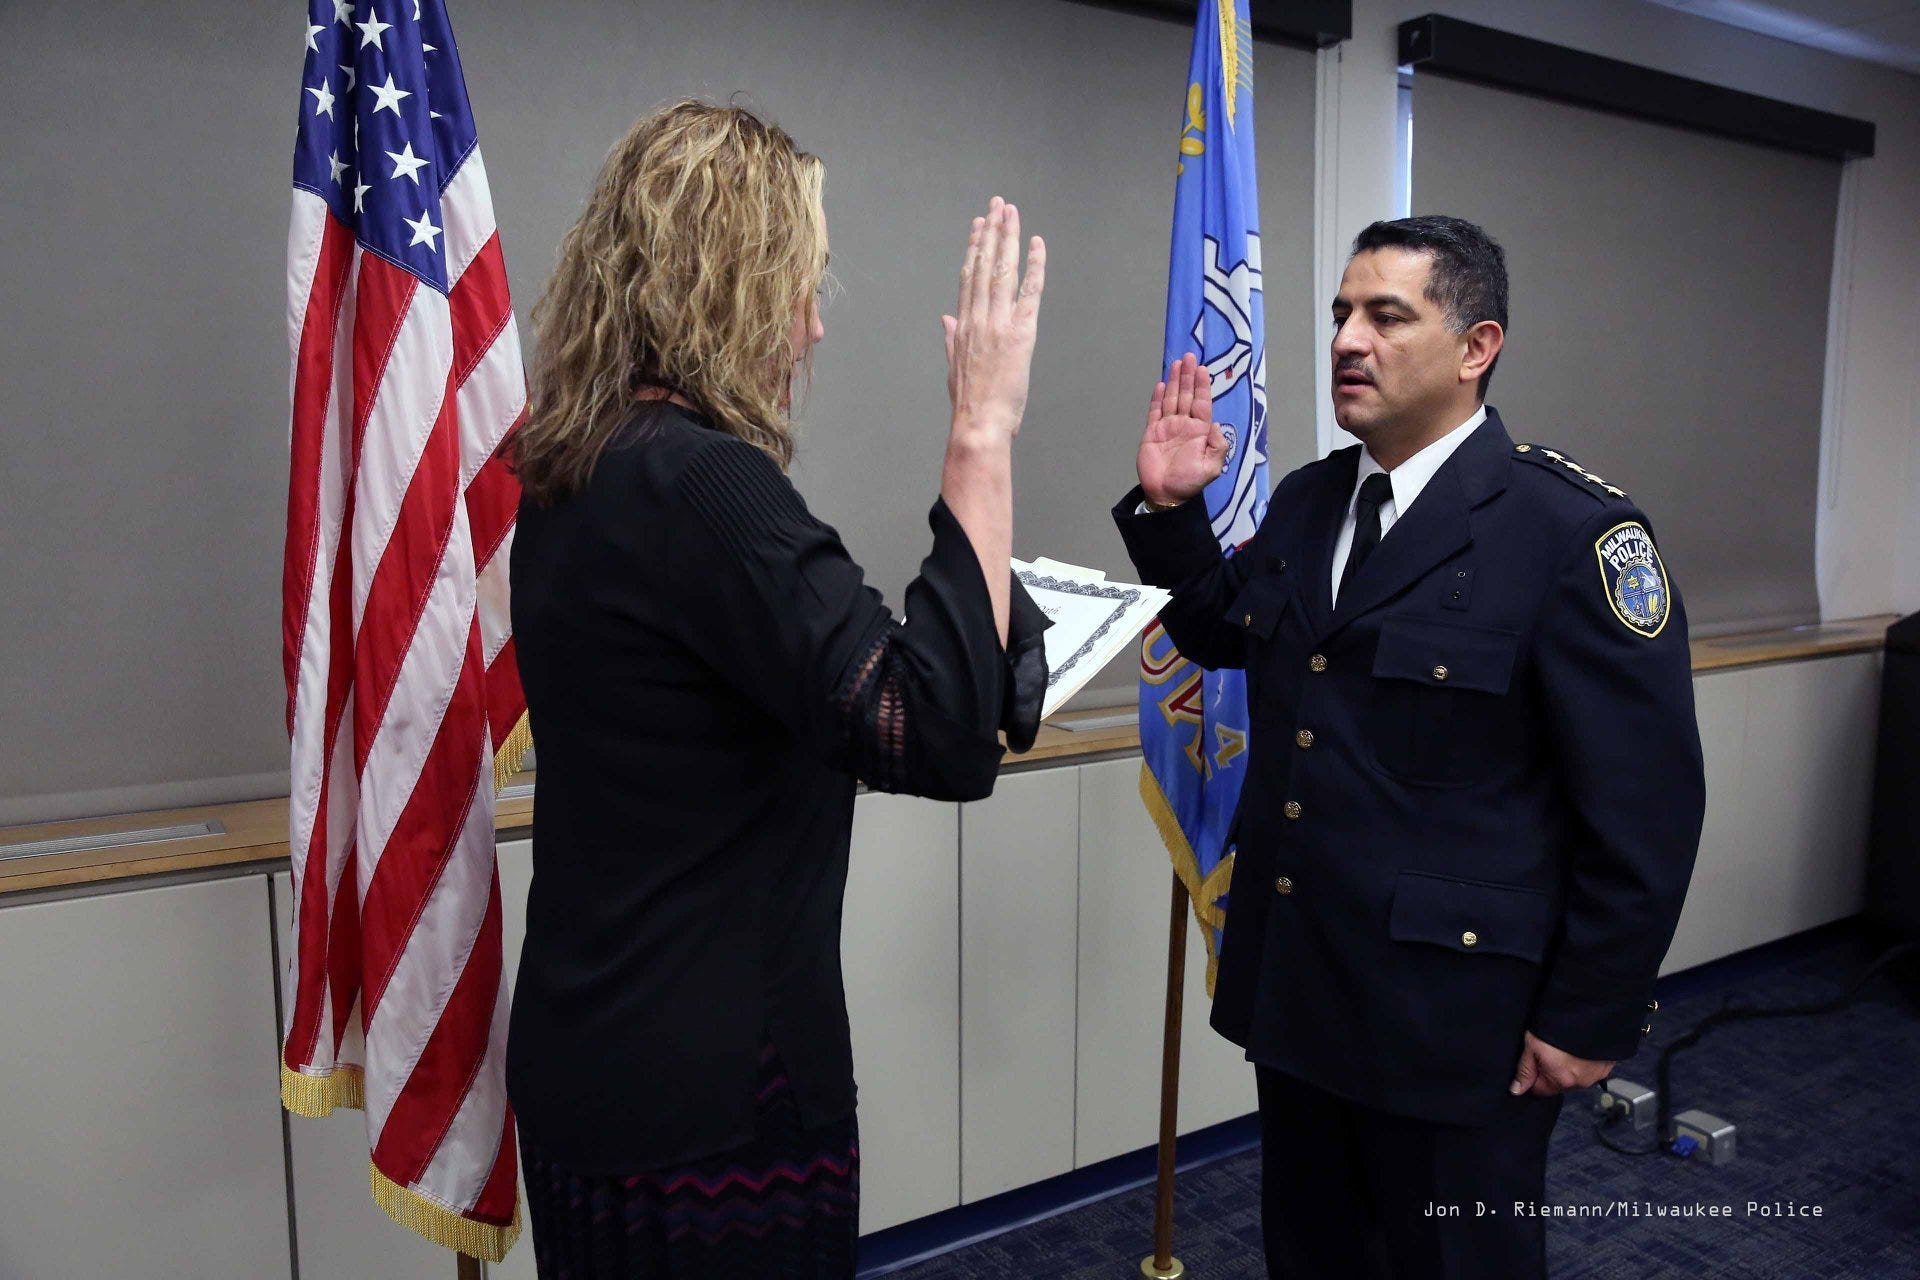 Alfonso Morales is sworn in as police chief by MaryNell Regan, executive director of the Fire and Police Commission, in this 2018 photo.